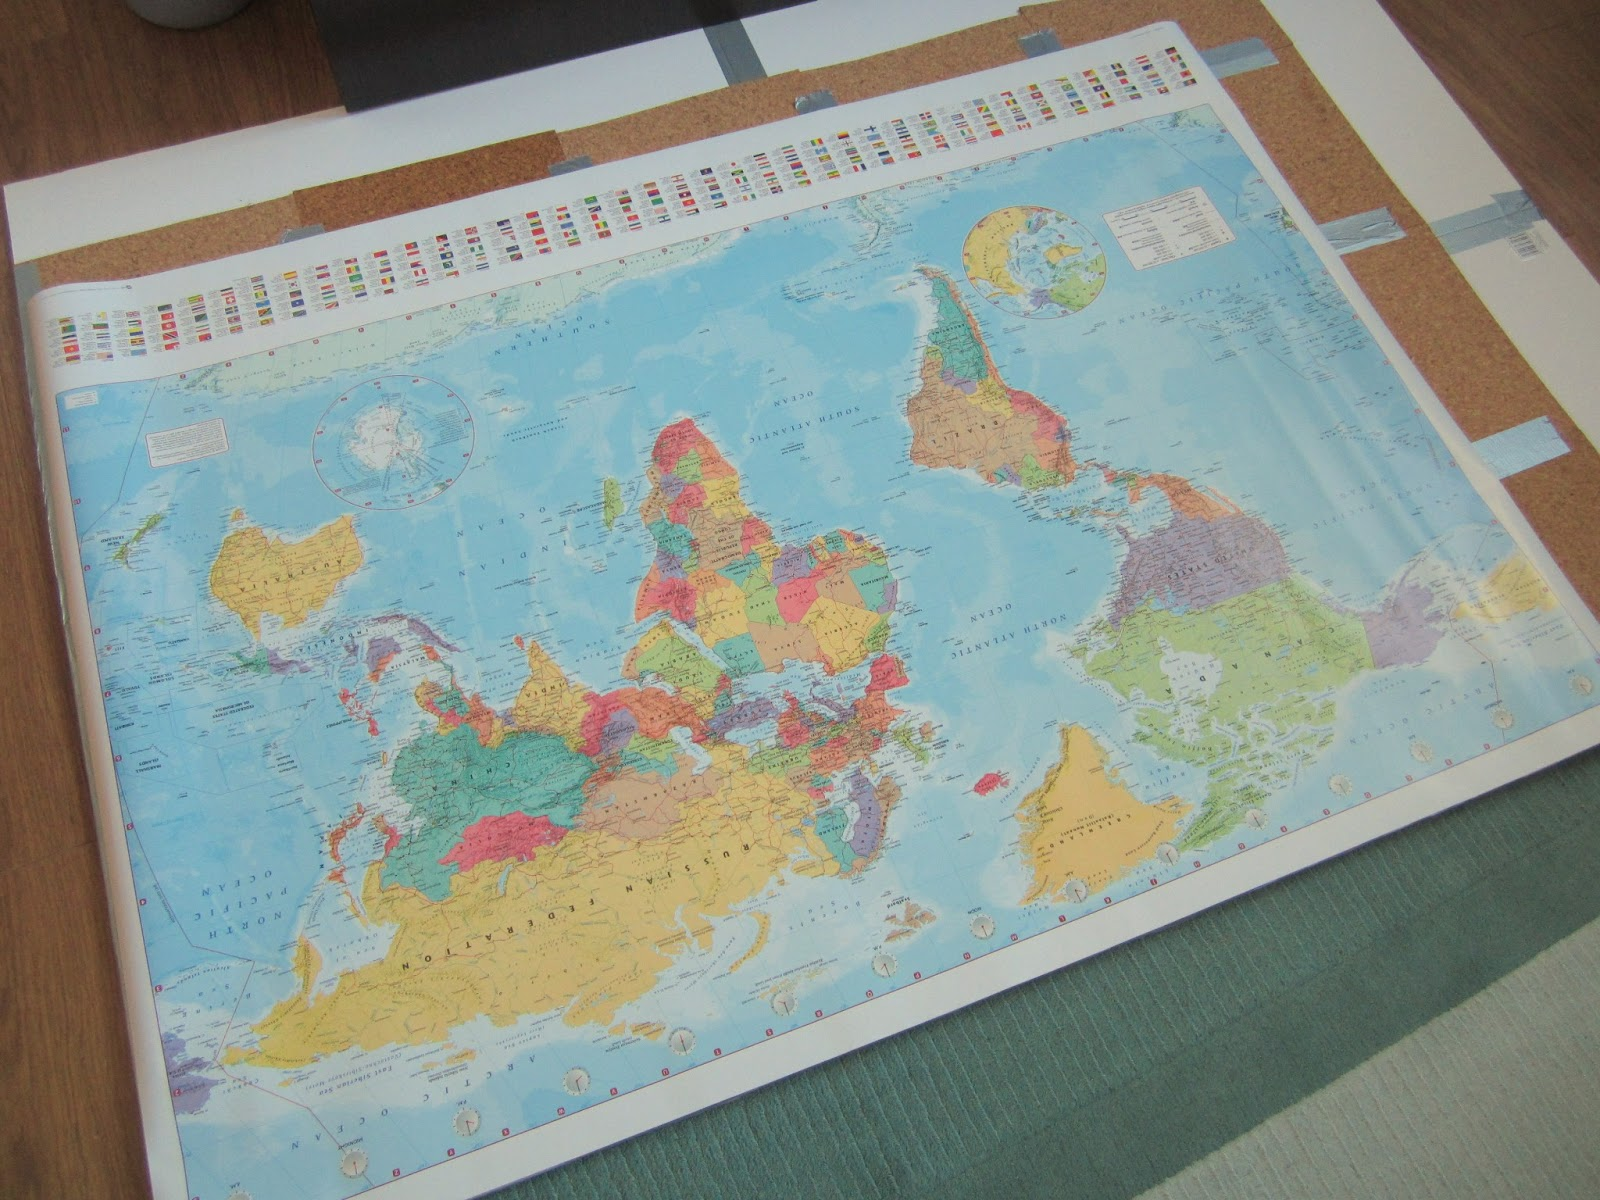 Giant world map pinboard crafty weekend craft projects for the giant world map pinboard crafty weekend craft projects for the weekend gumiabroncs